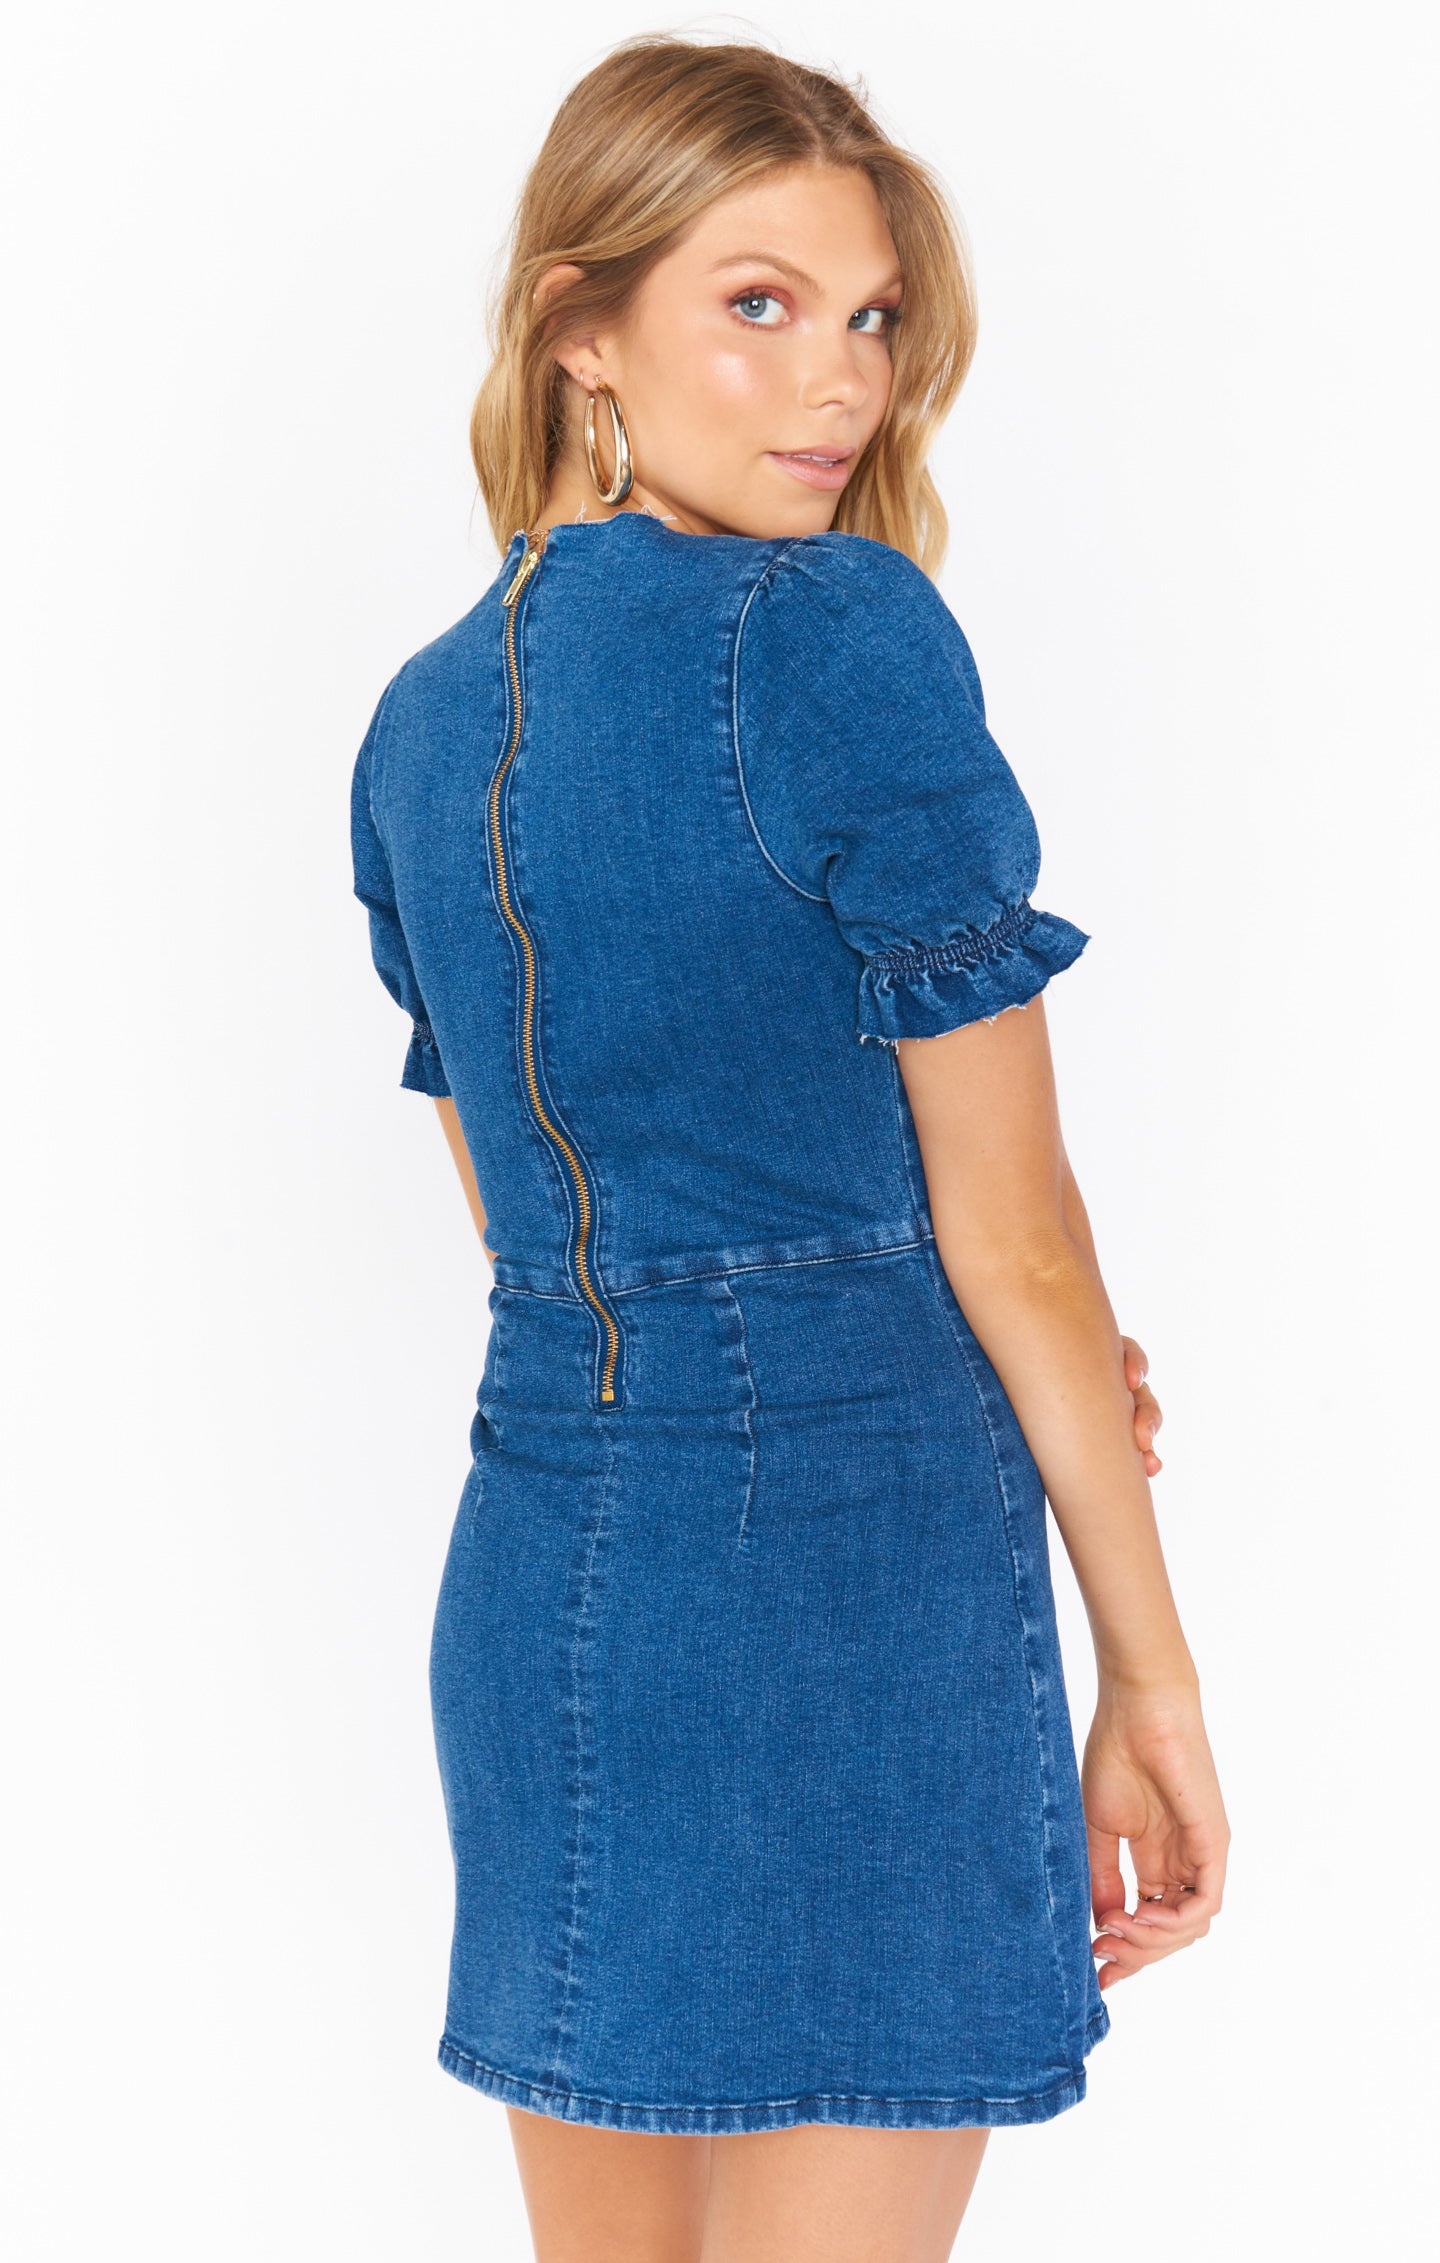 Zoey Denim Dress